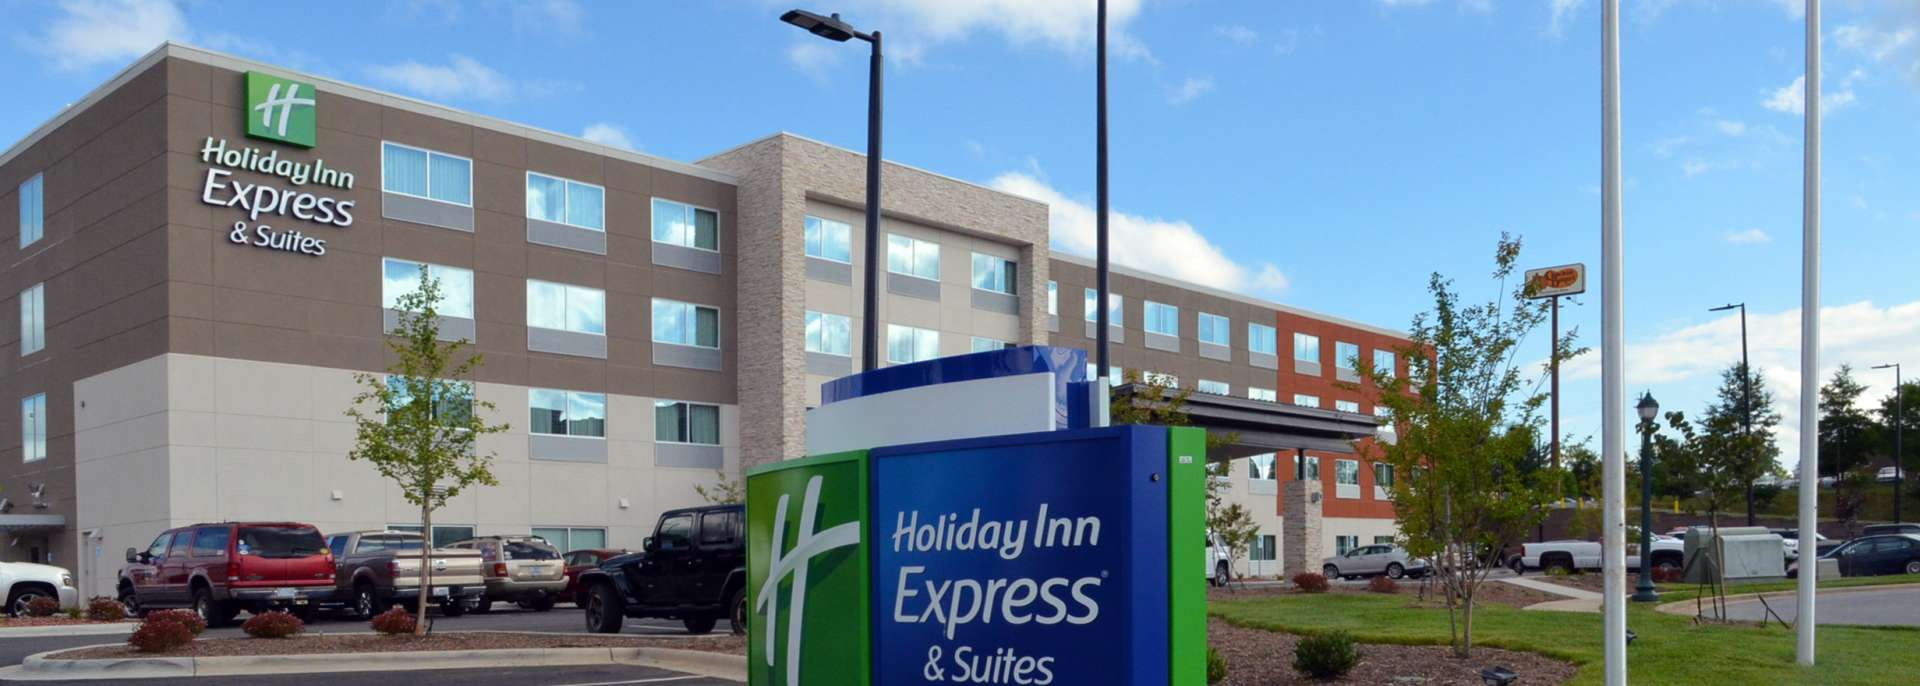 Outside the Holiday Inn Express in Salisbury, NC